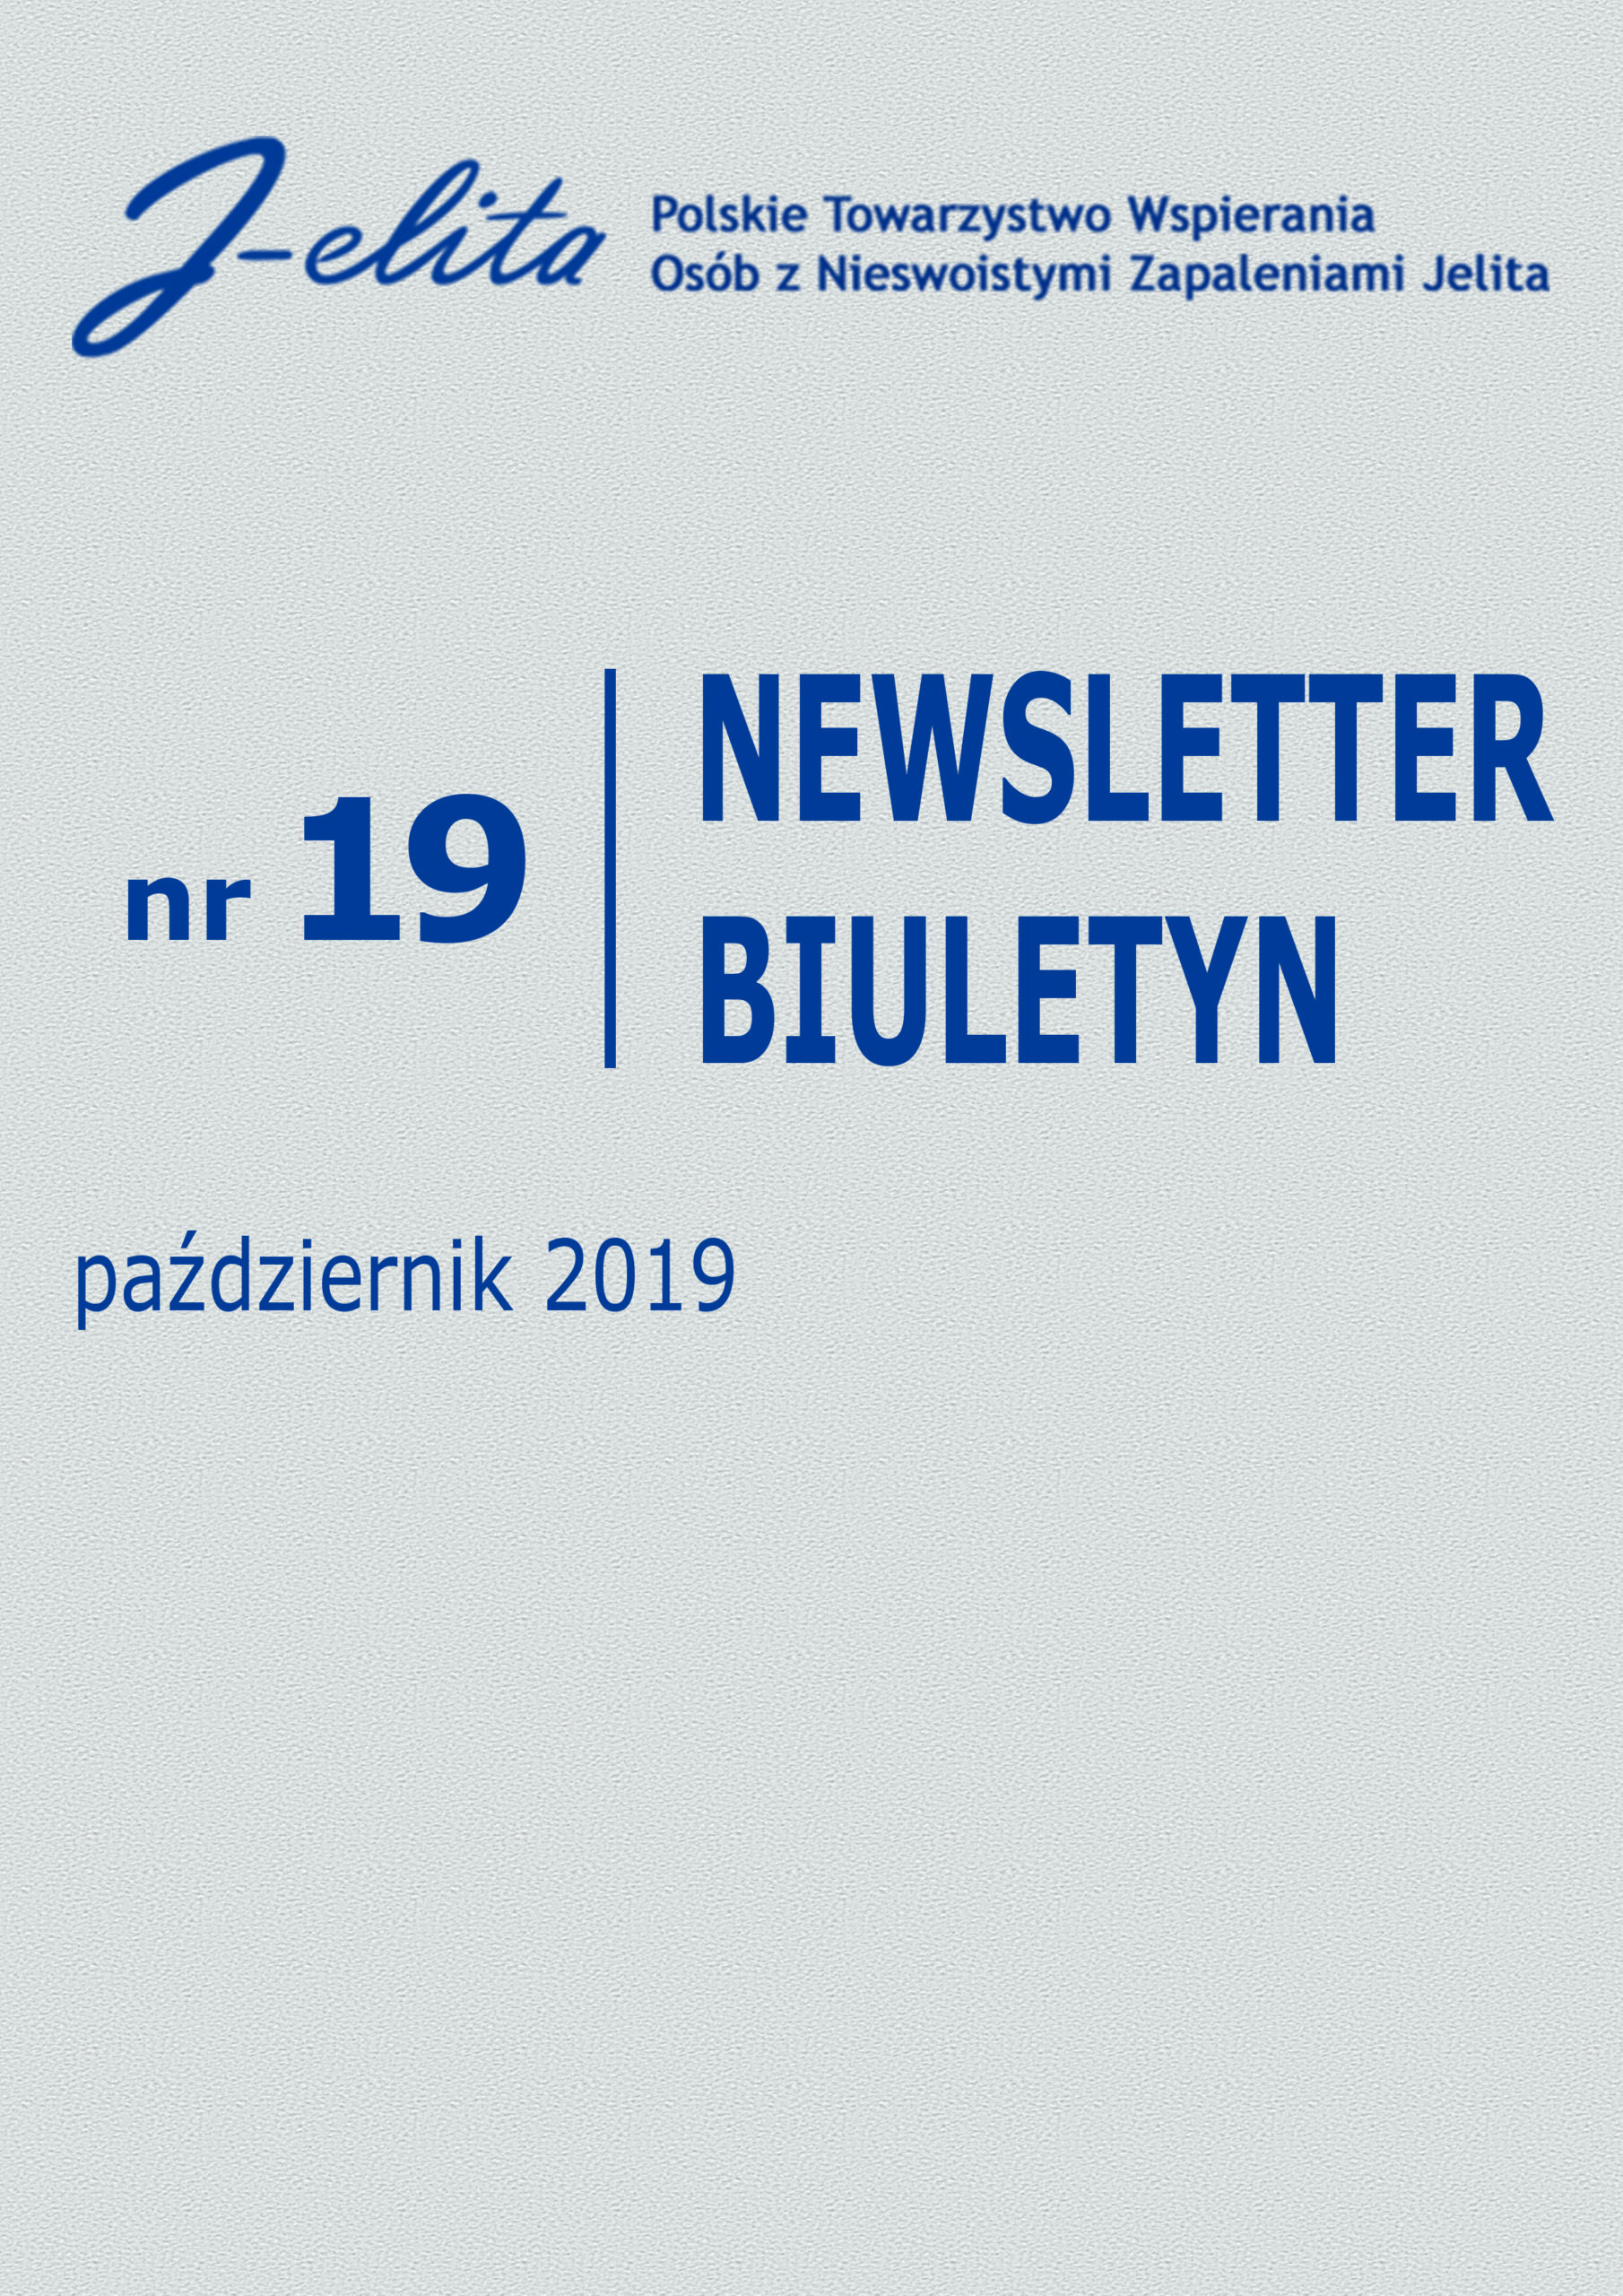 Newsletter-okladka-pazdziernik-scaled